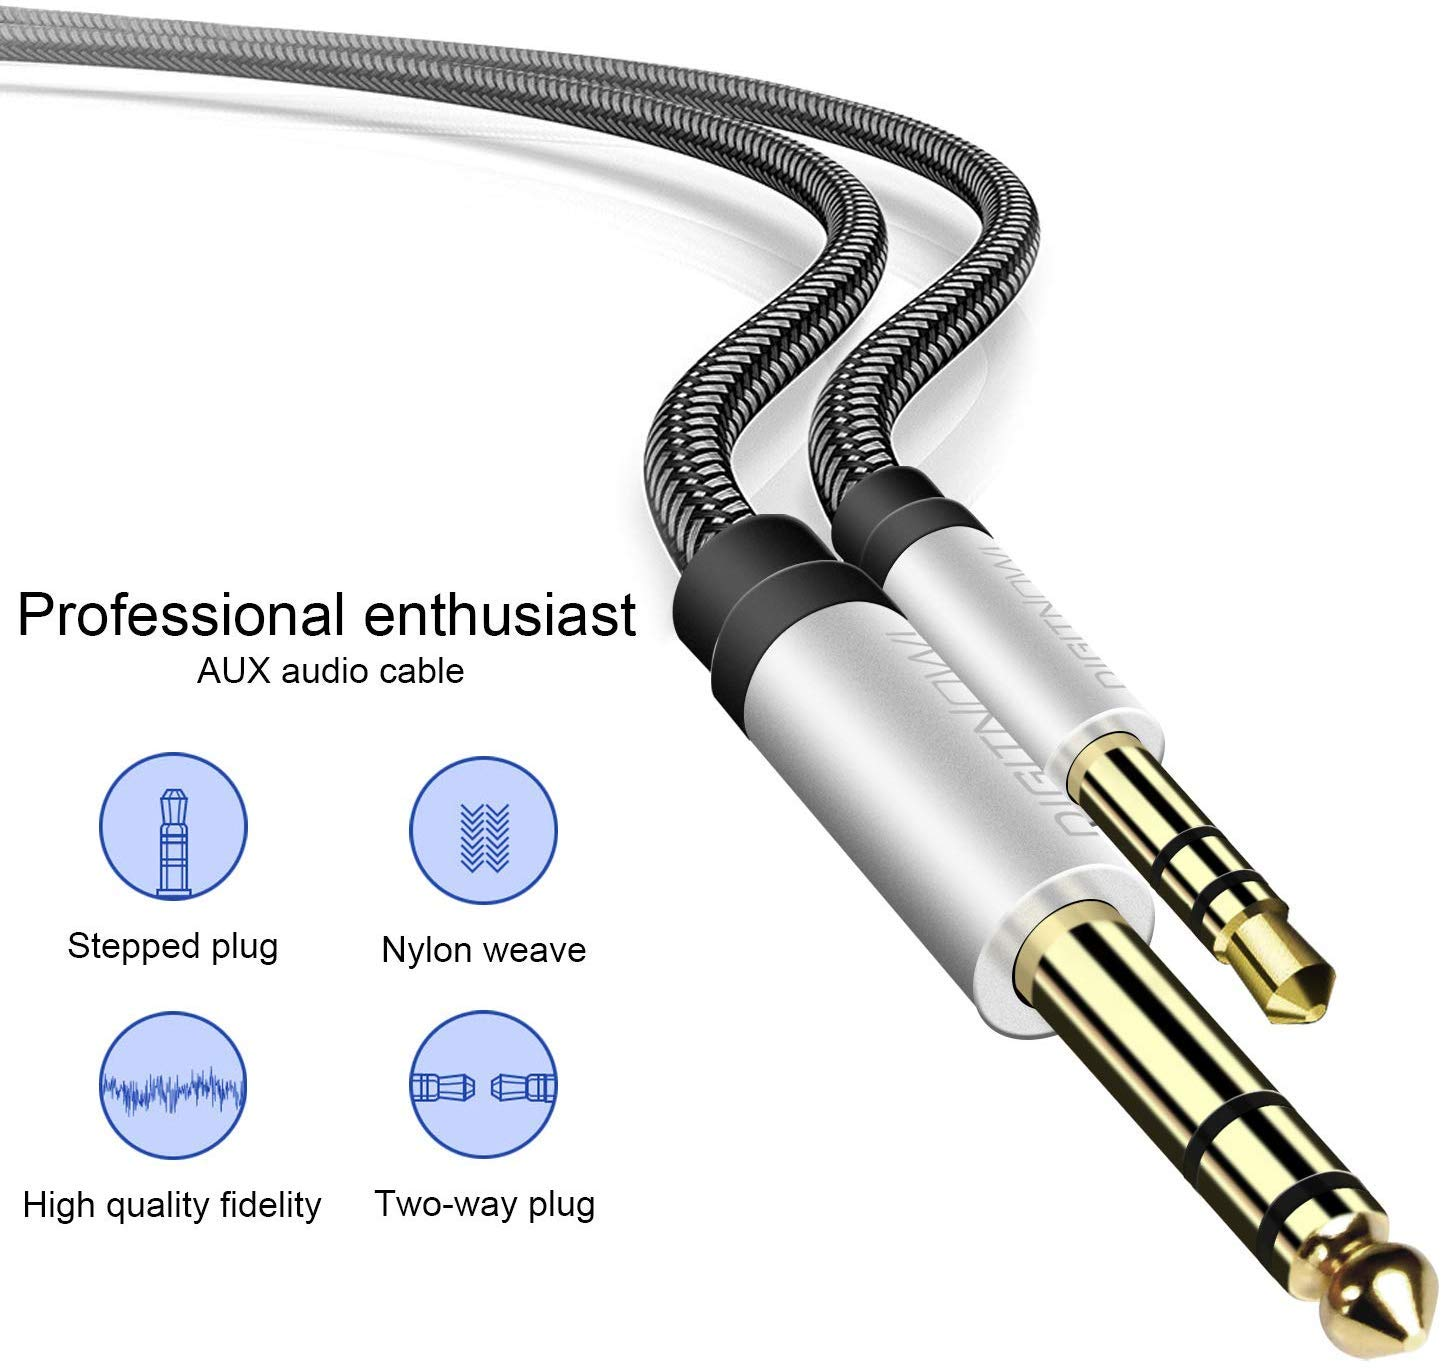 """6.35mm 1/4"""" to 3.5mm 1/8"""" Male TRS Stereo Audio Cable with Alloy Housing and Nylon Braid for Smartphone, PC, Home Theater, Amplifier and Mixing Console, 3Ft"""